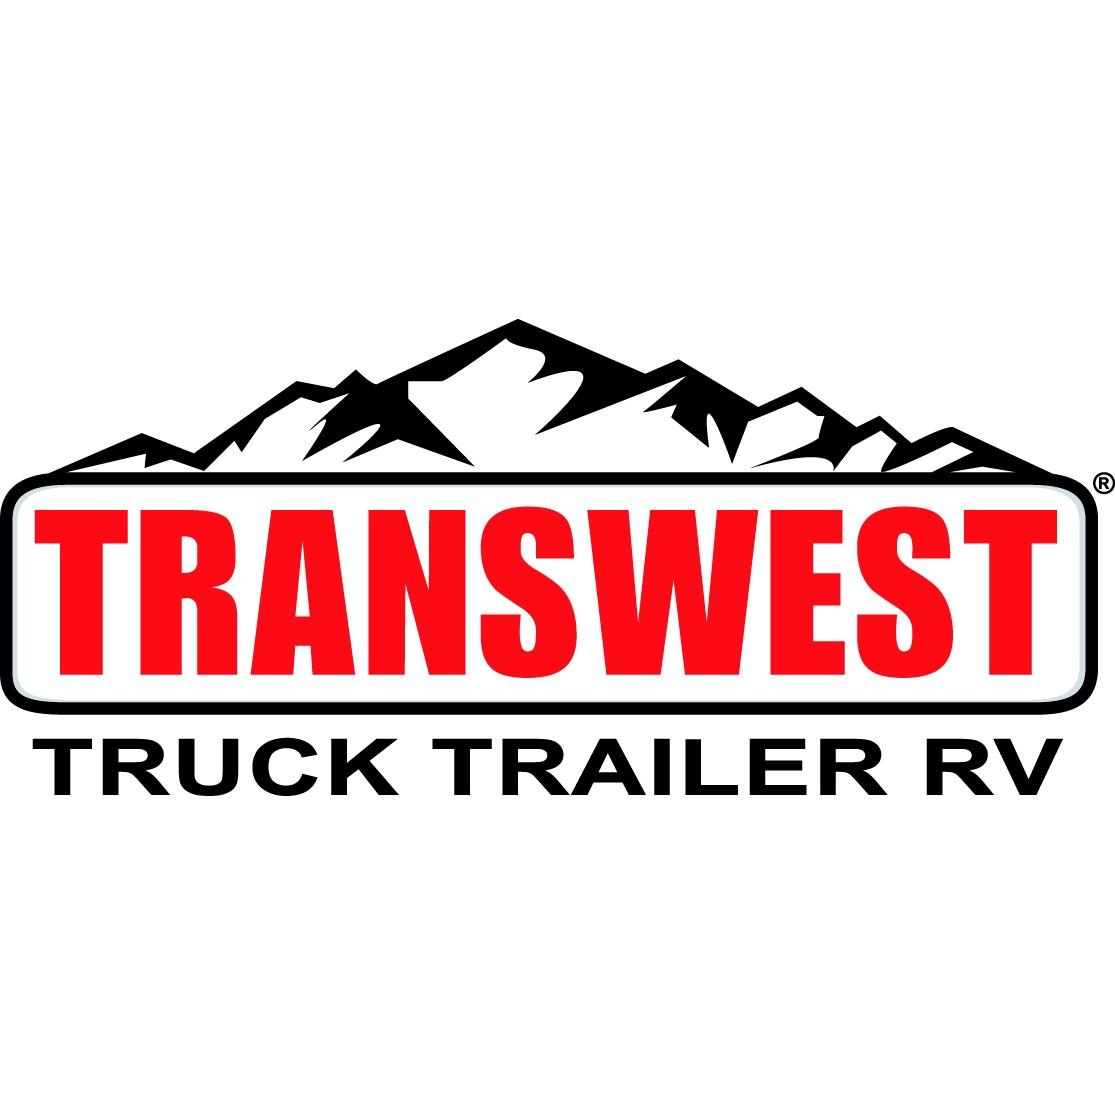 Transwest Truck Trailer RV of Fountain